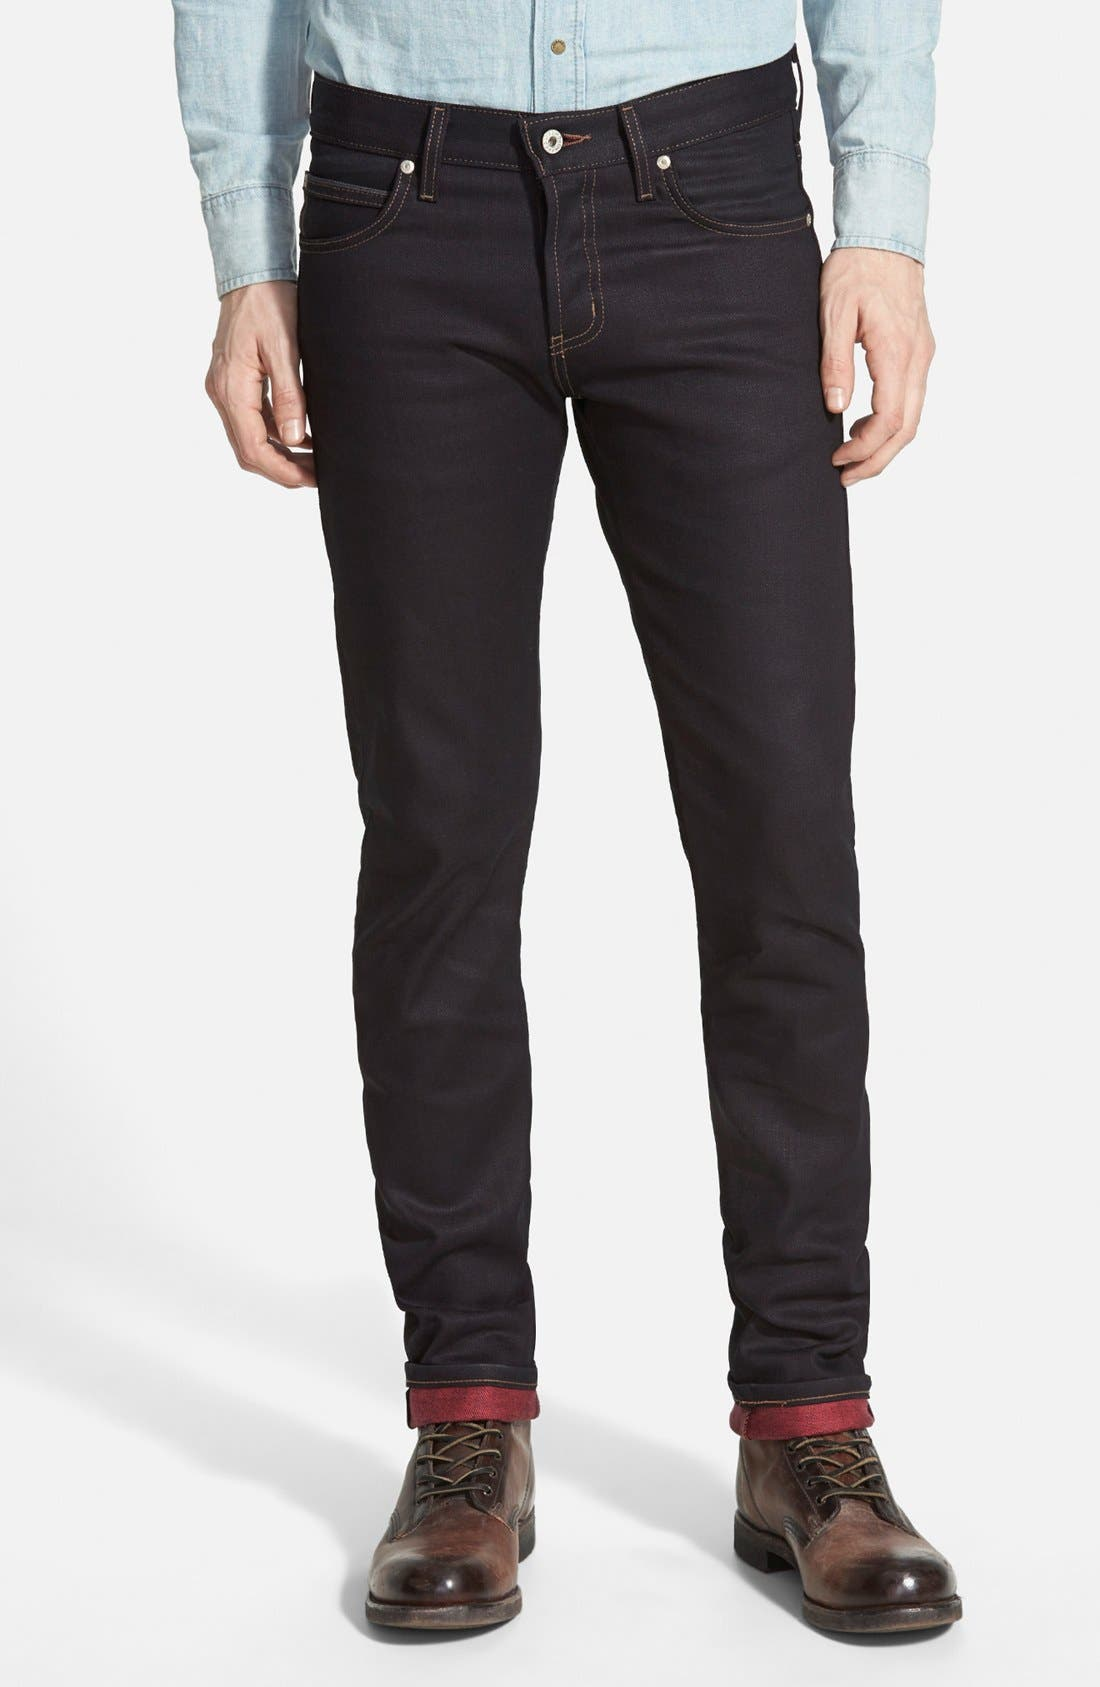 Naked & Famous Denim Super Skinny Guy Skinny Fit Jeans (Red Weft Stretch Selvedge)